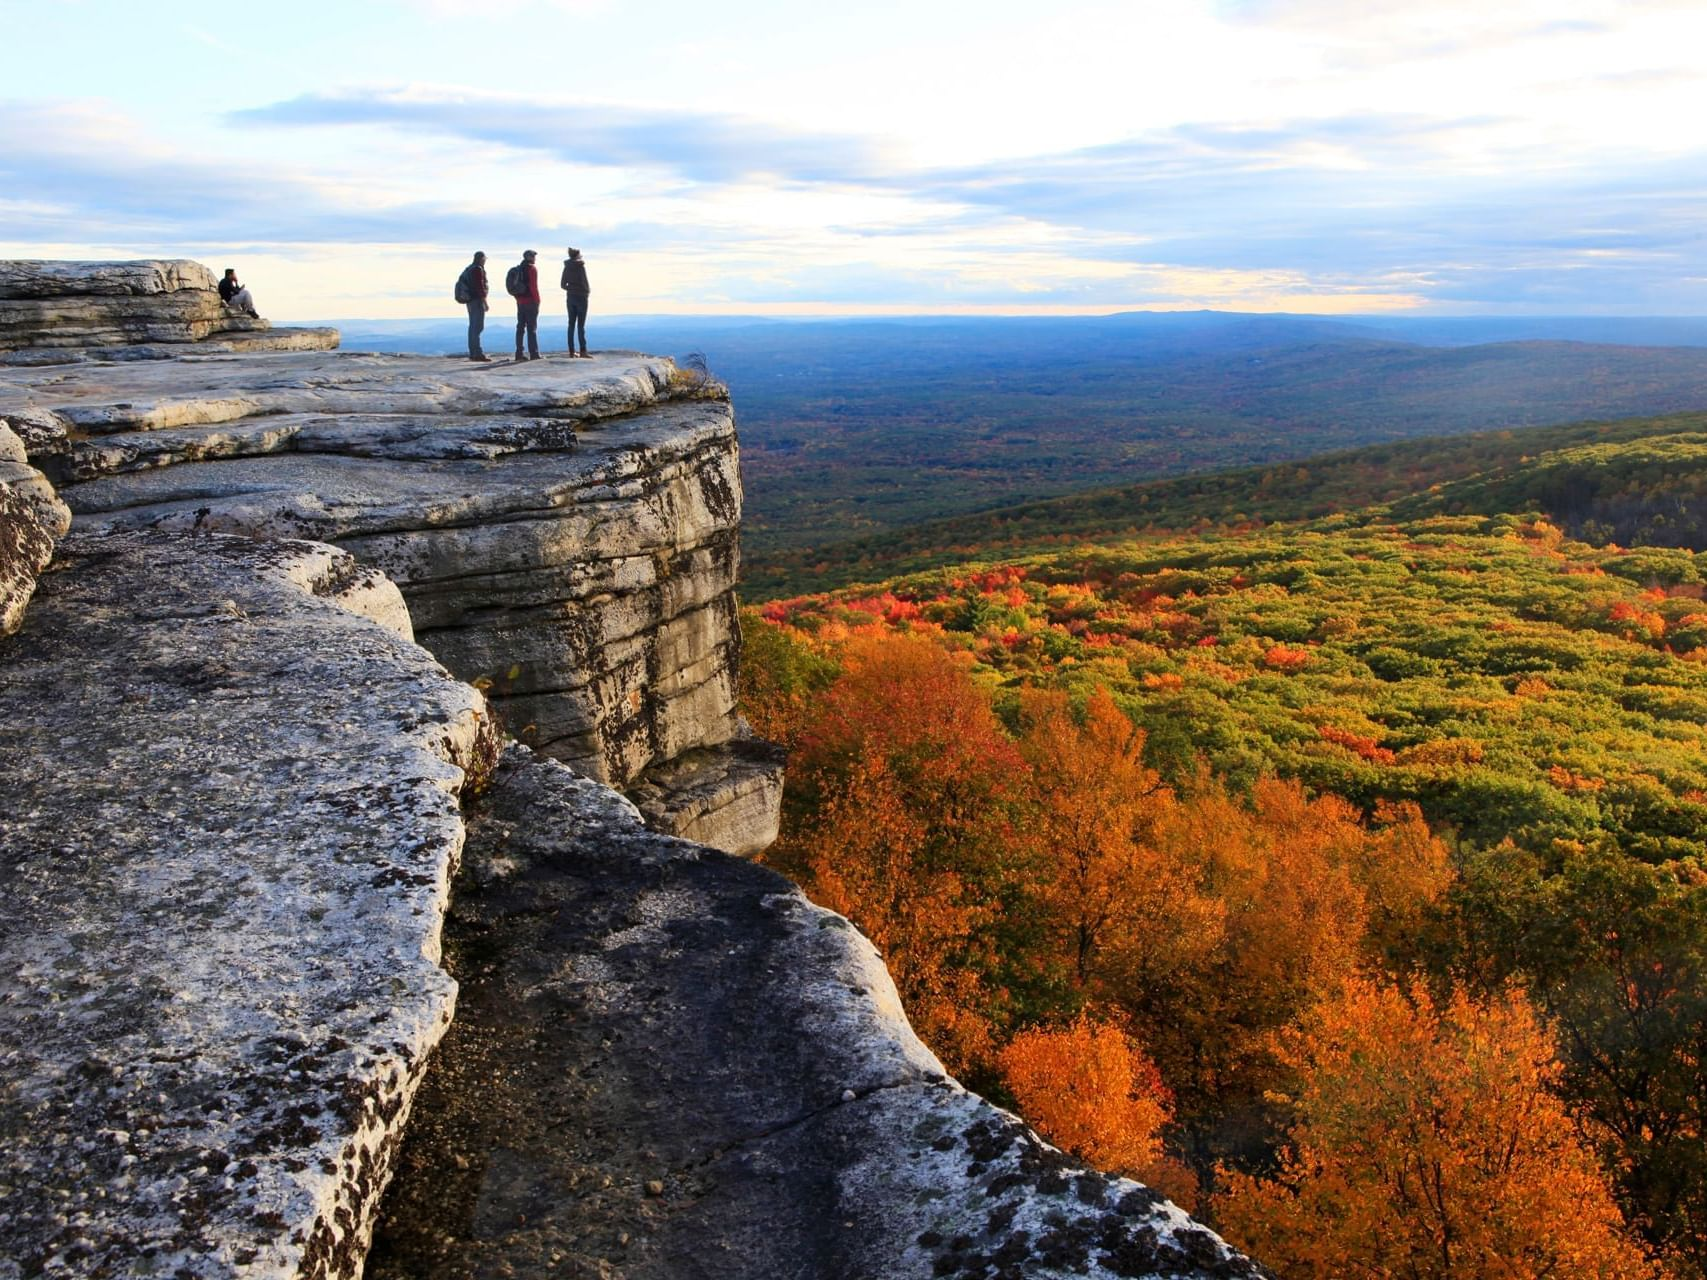 Mountain cliff overlooking fall trees